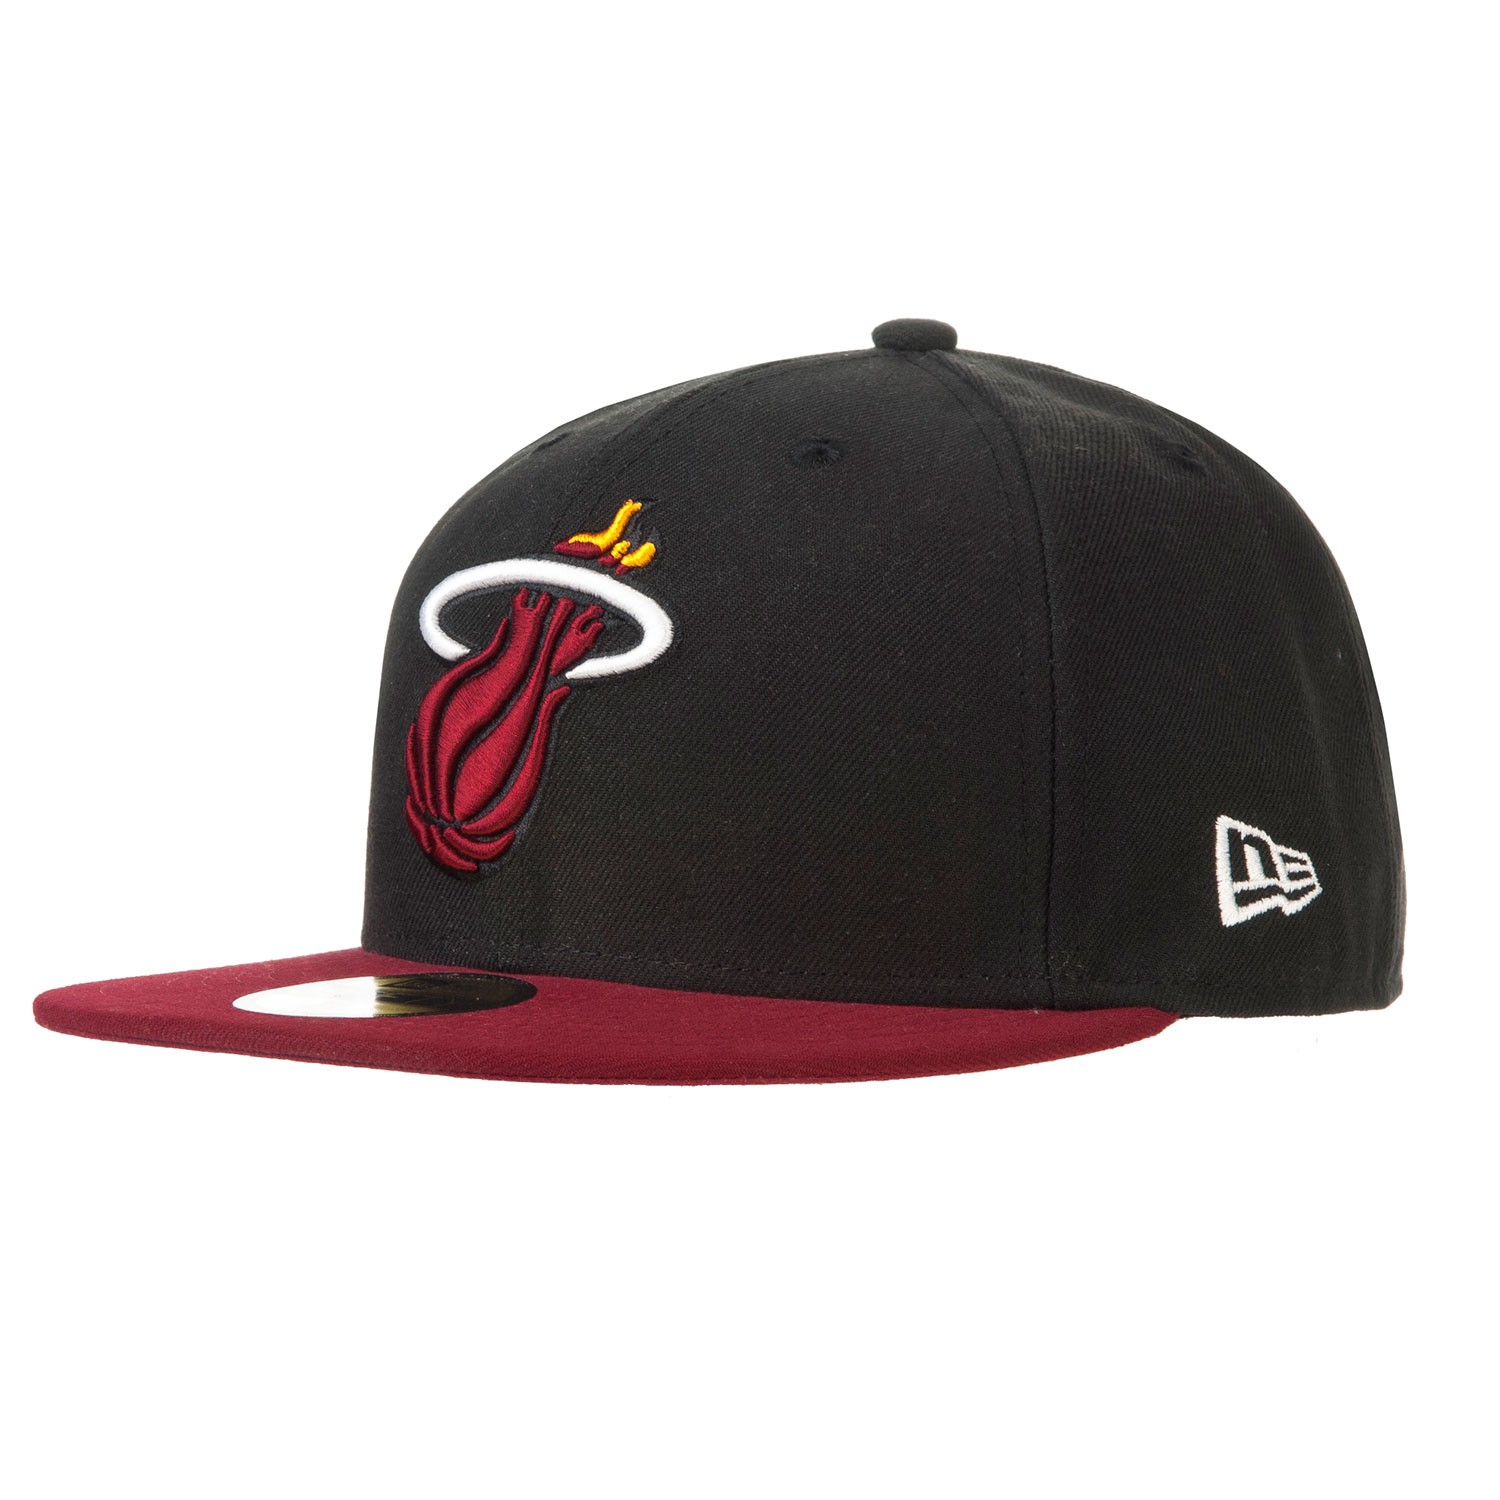 Kšiltovka New Era Miami Heat 59Fifty Basic black/red